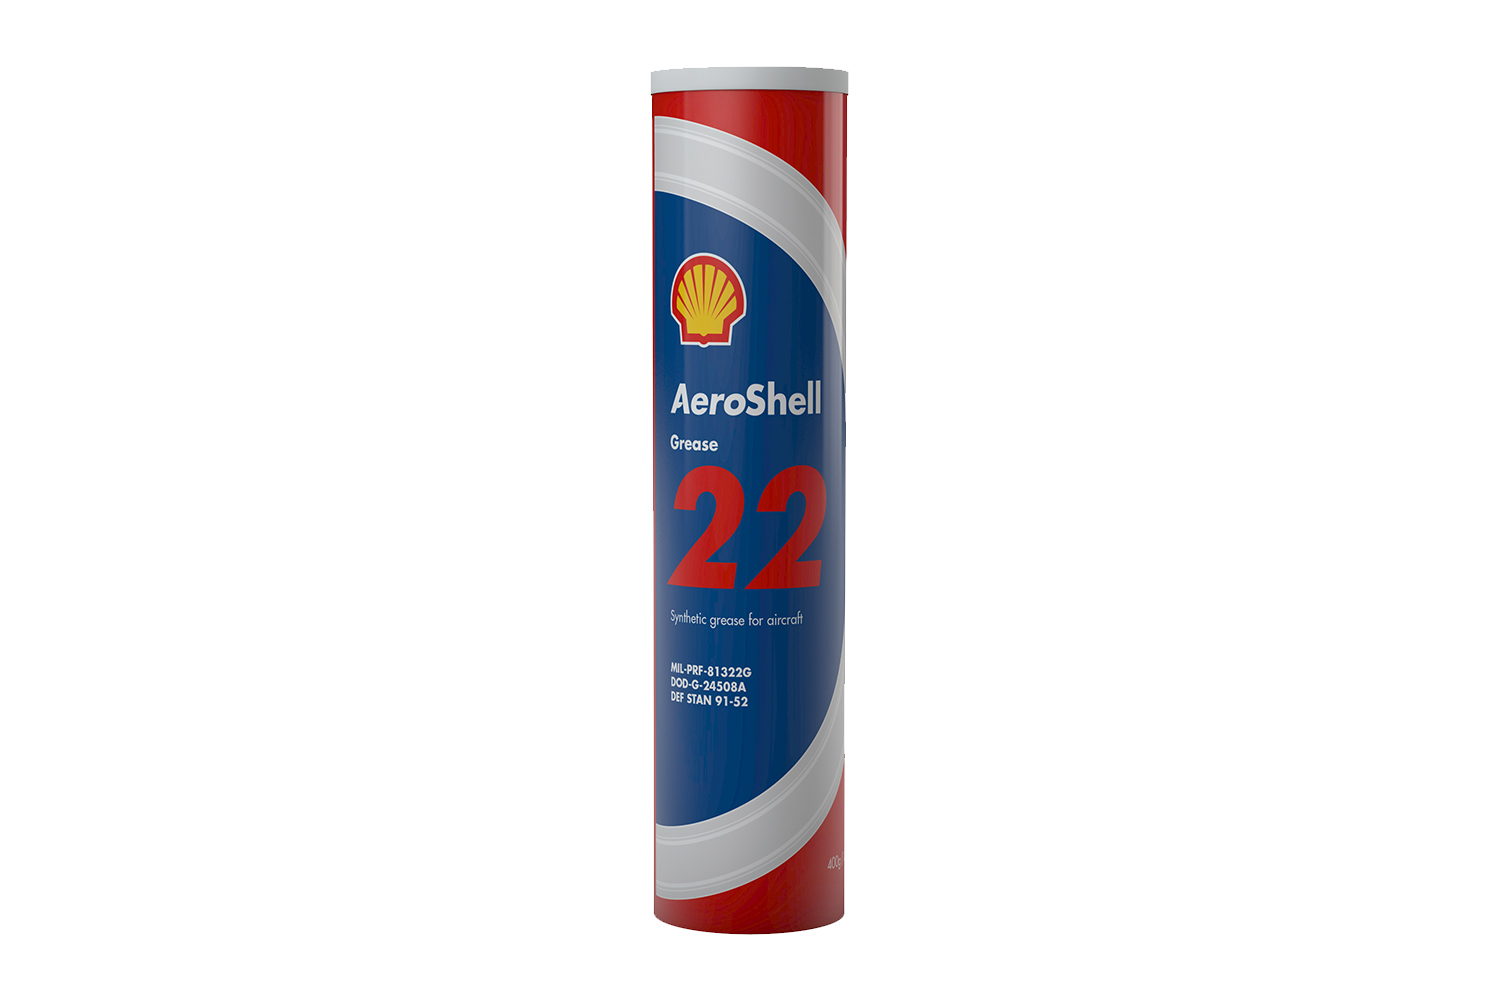 images/j2store/products/diffusees/34157-aeroshell-grease-22-380g-cartridge.jpg